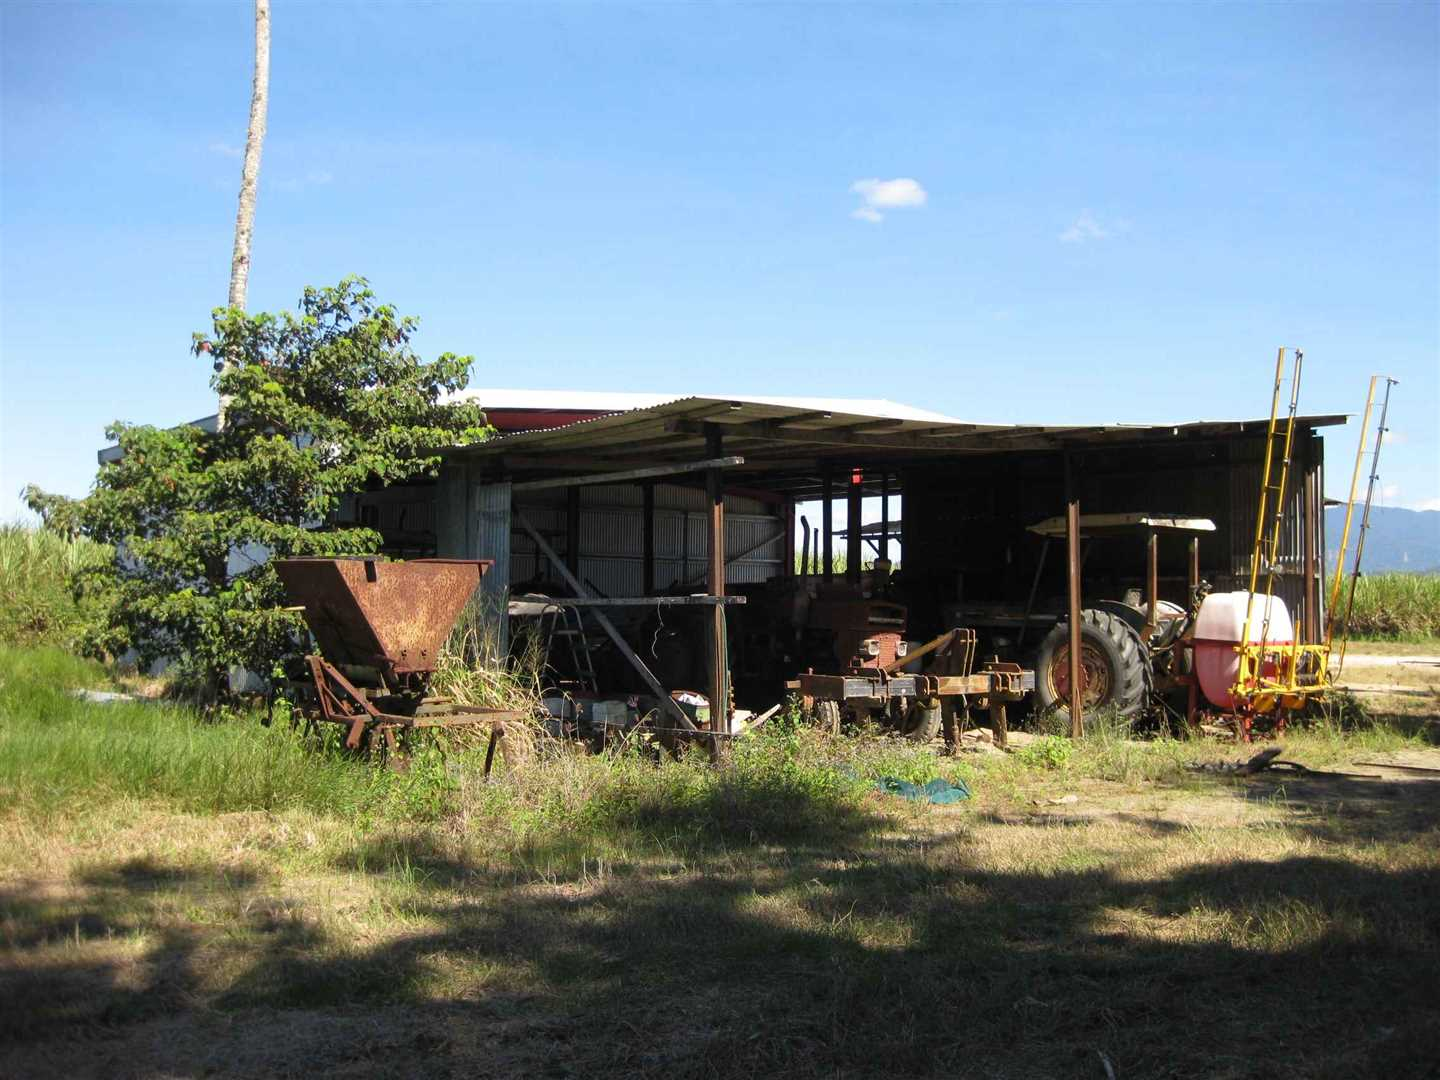 View of part of sheds, photo 4